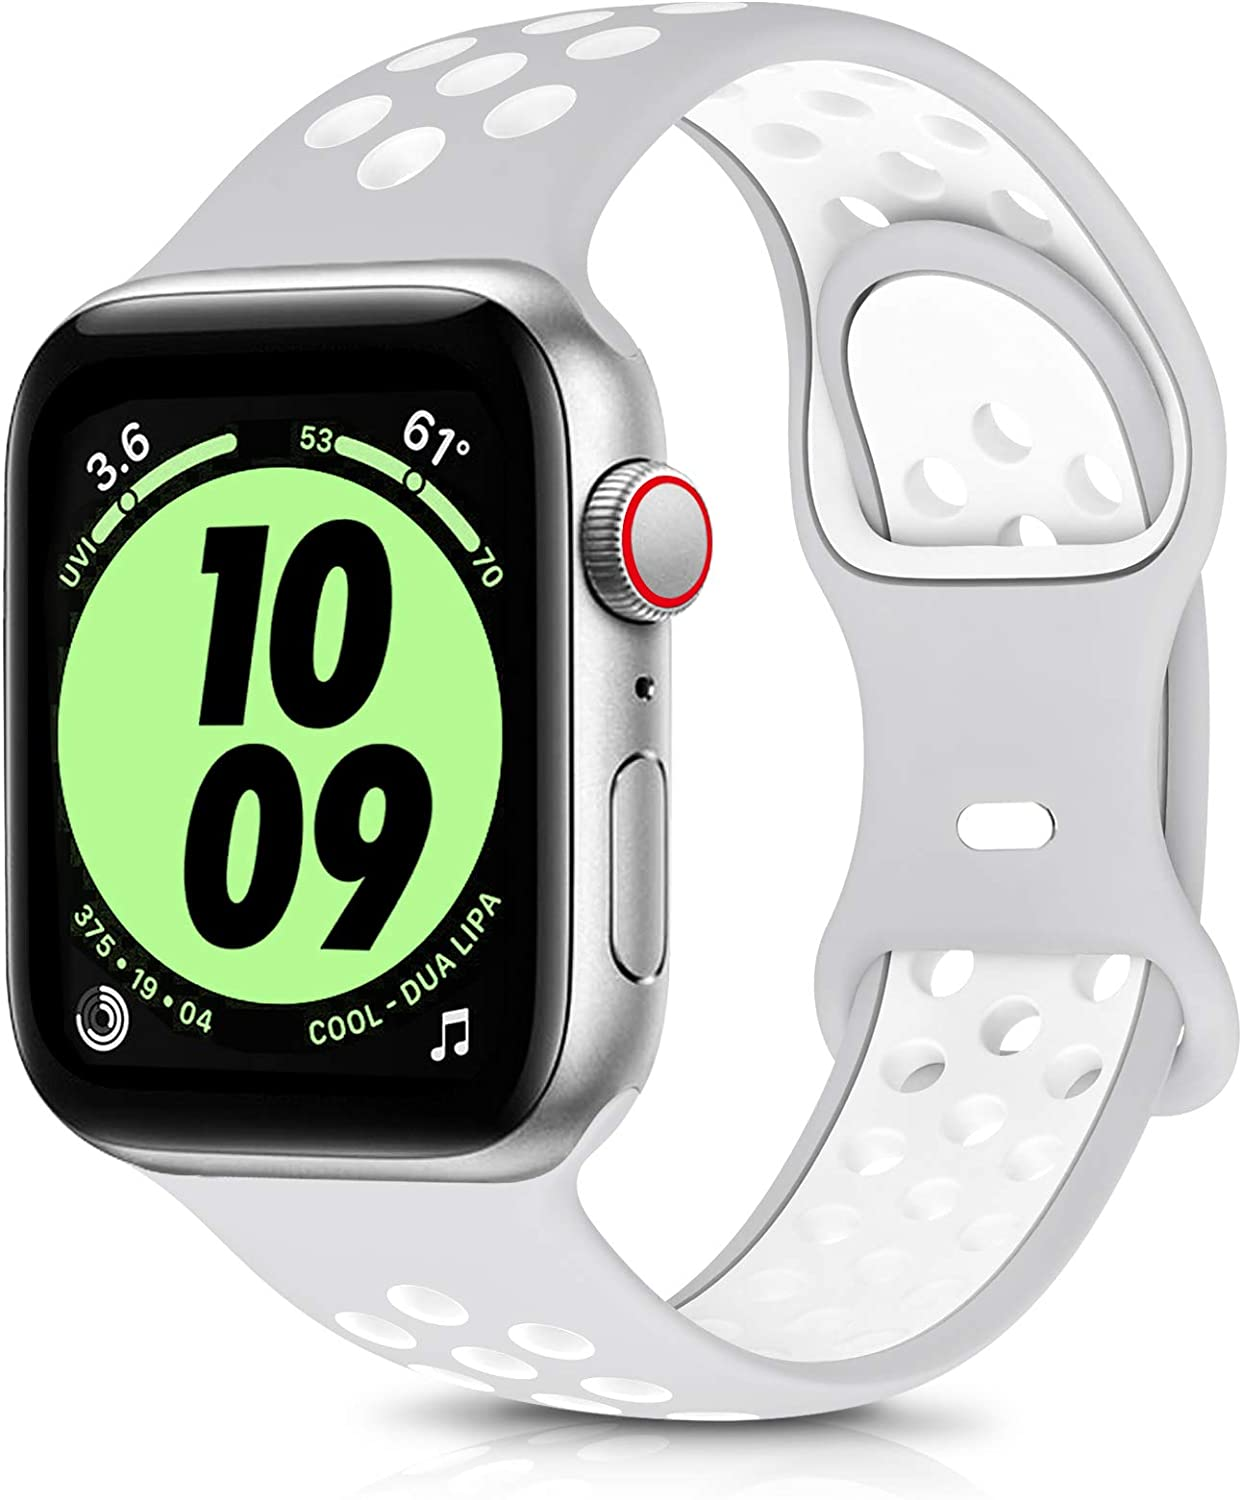 OYODSS Sport Bands Compatible with Apple Watch Band 38mm 40mm 42mm 44mm, Breathable Soft Silicone Replacement Wristband Strap Compatible with iWatch Series 6 5 4 3 2 1 SE Women Men Grey&White